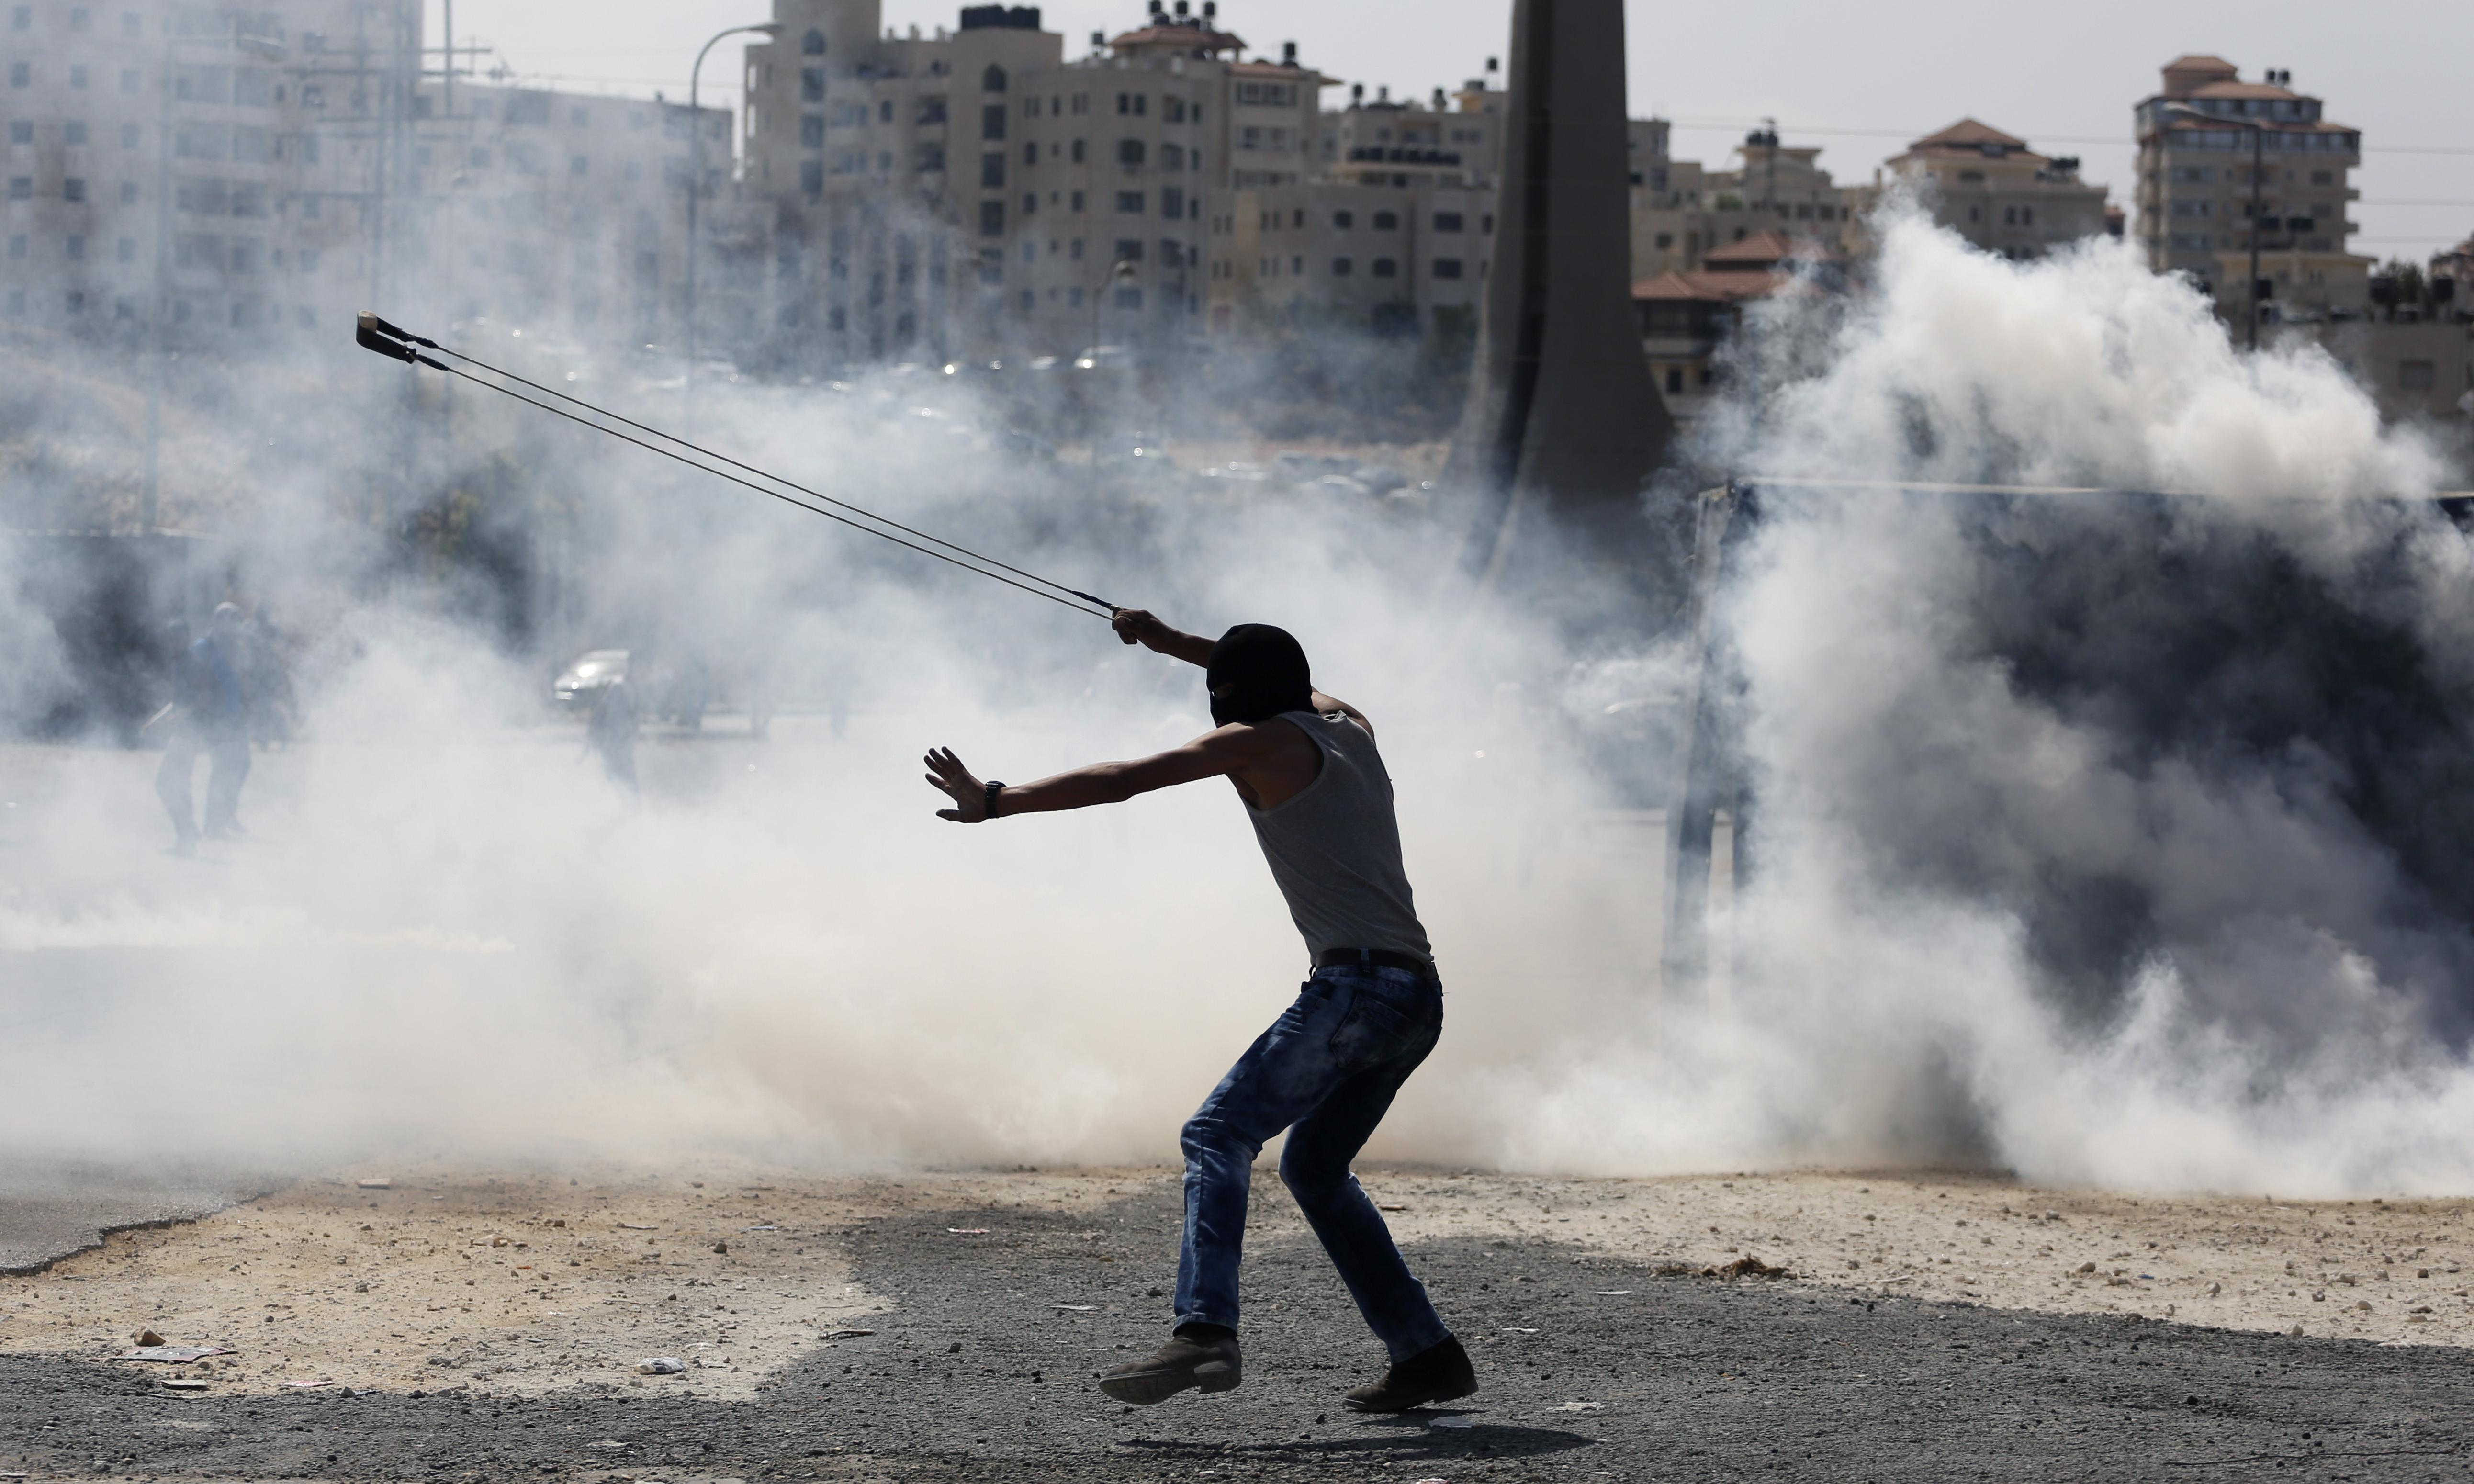 Boy killed in West Bank in clashes with Israeli troops